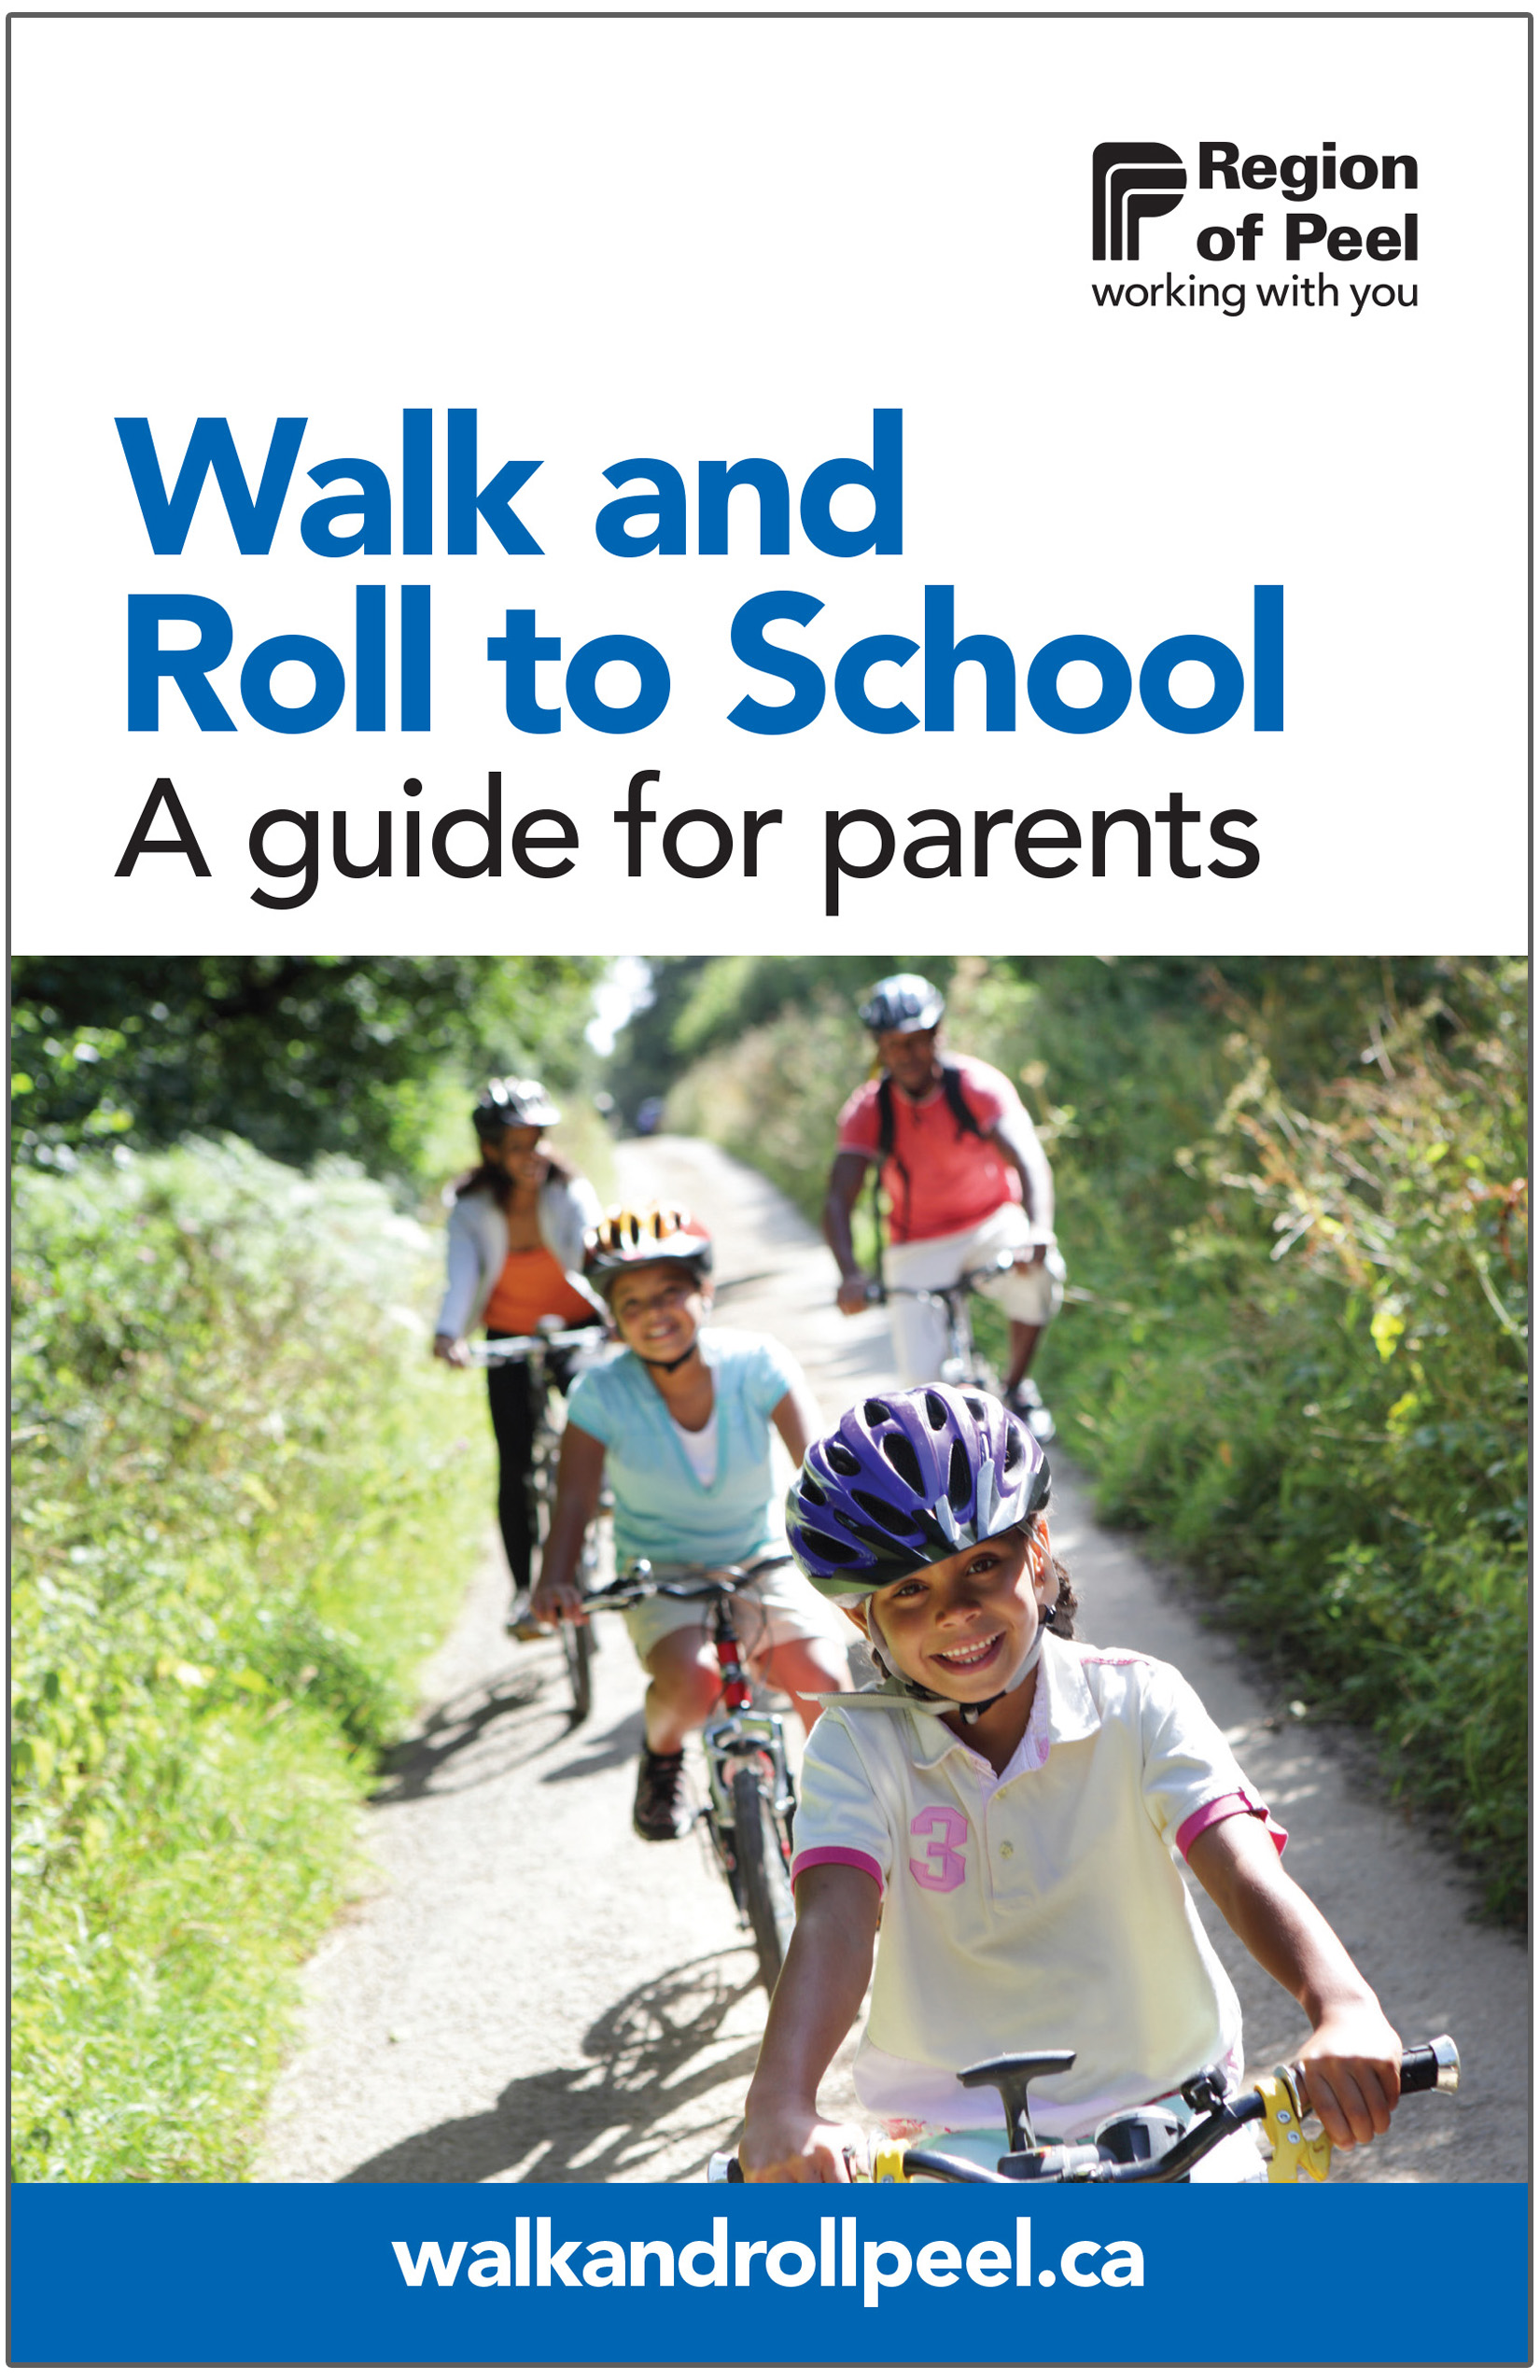 Walk and Roll to School - A Guide for Parents